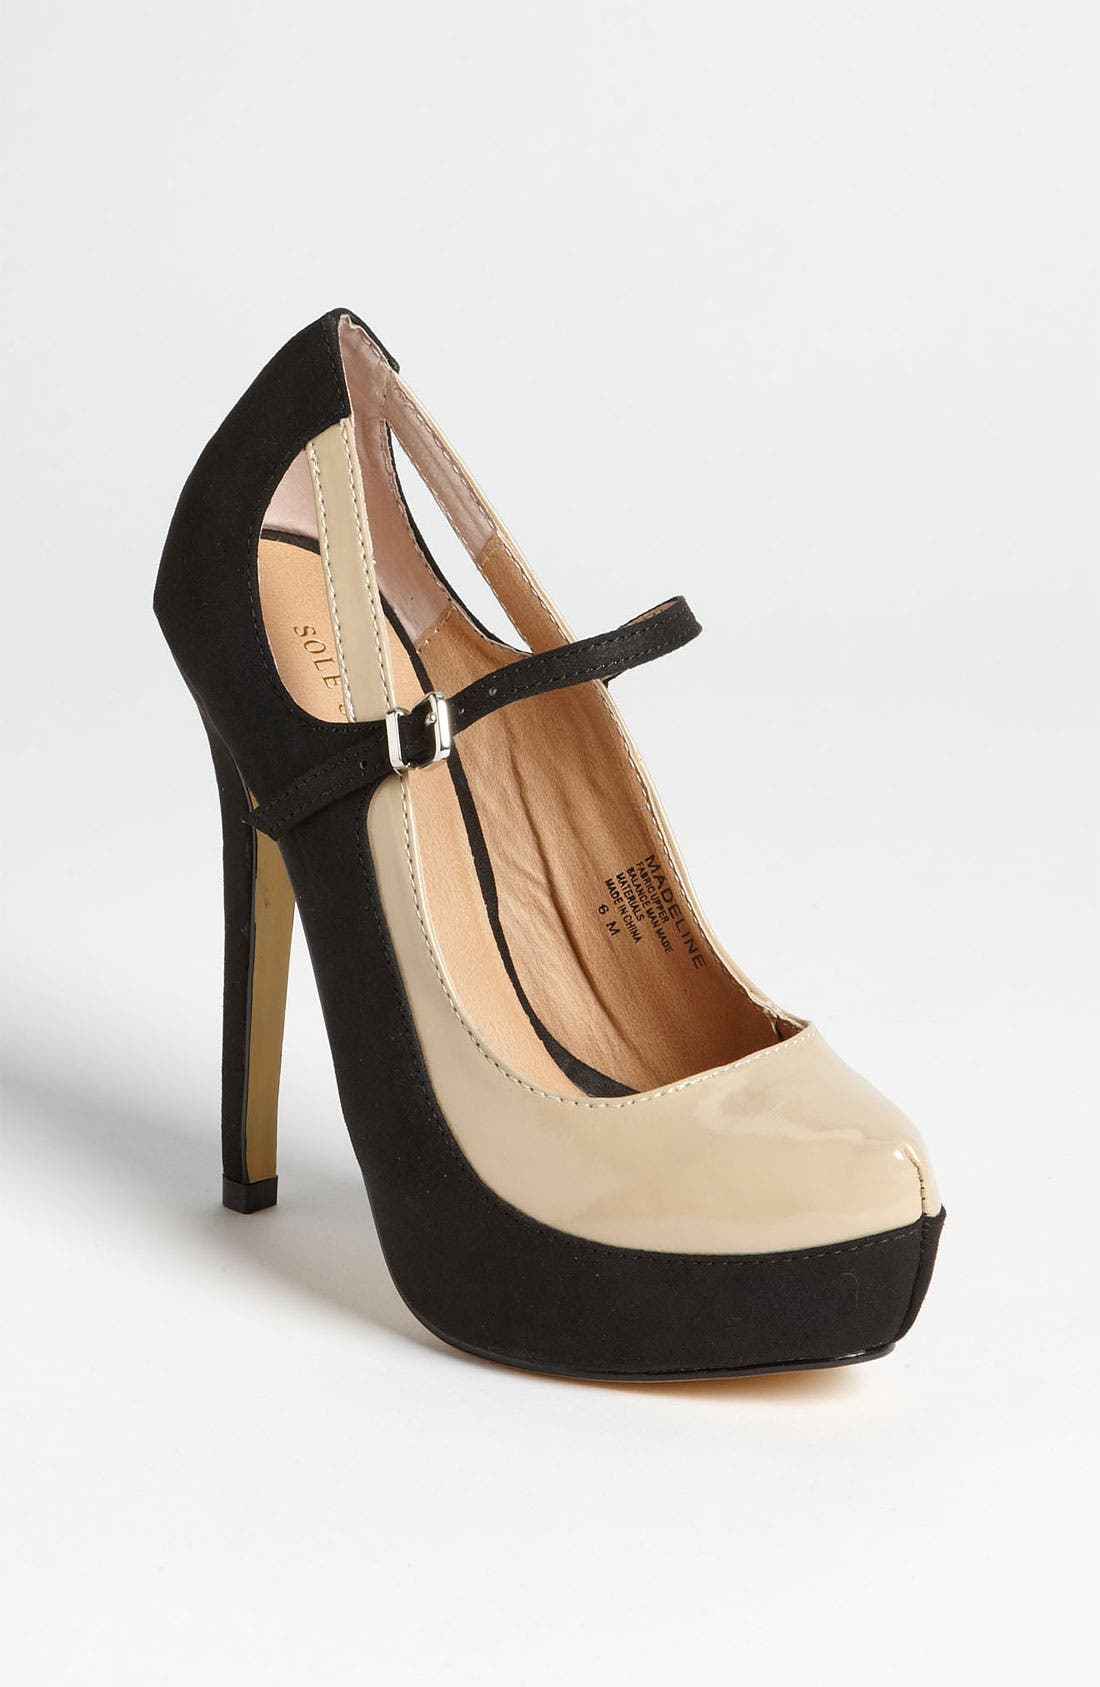 Main Image - Sole Society 'Madeline' Pump